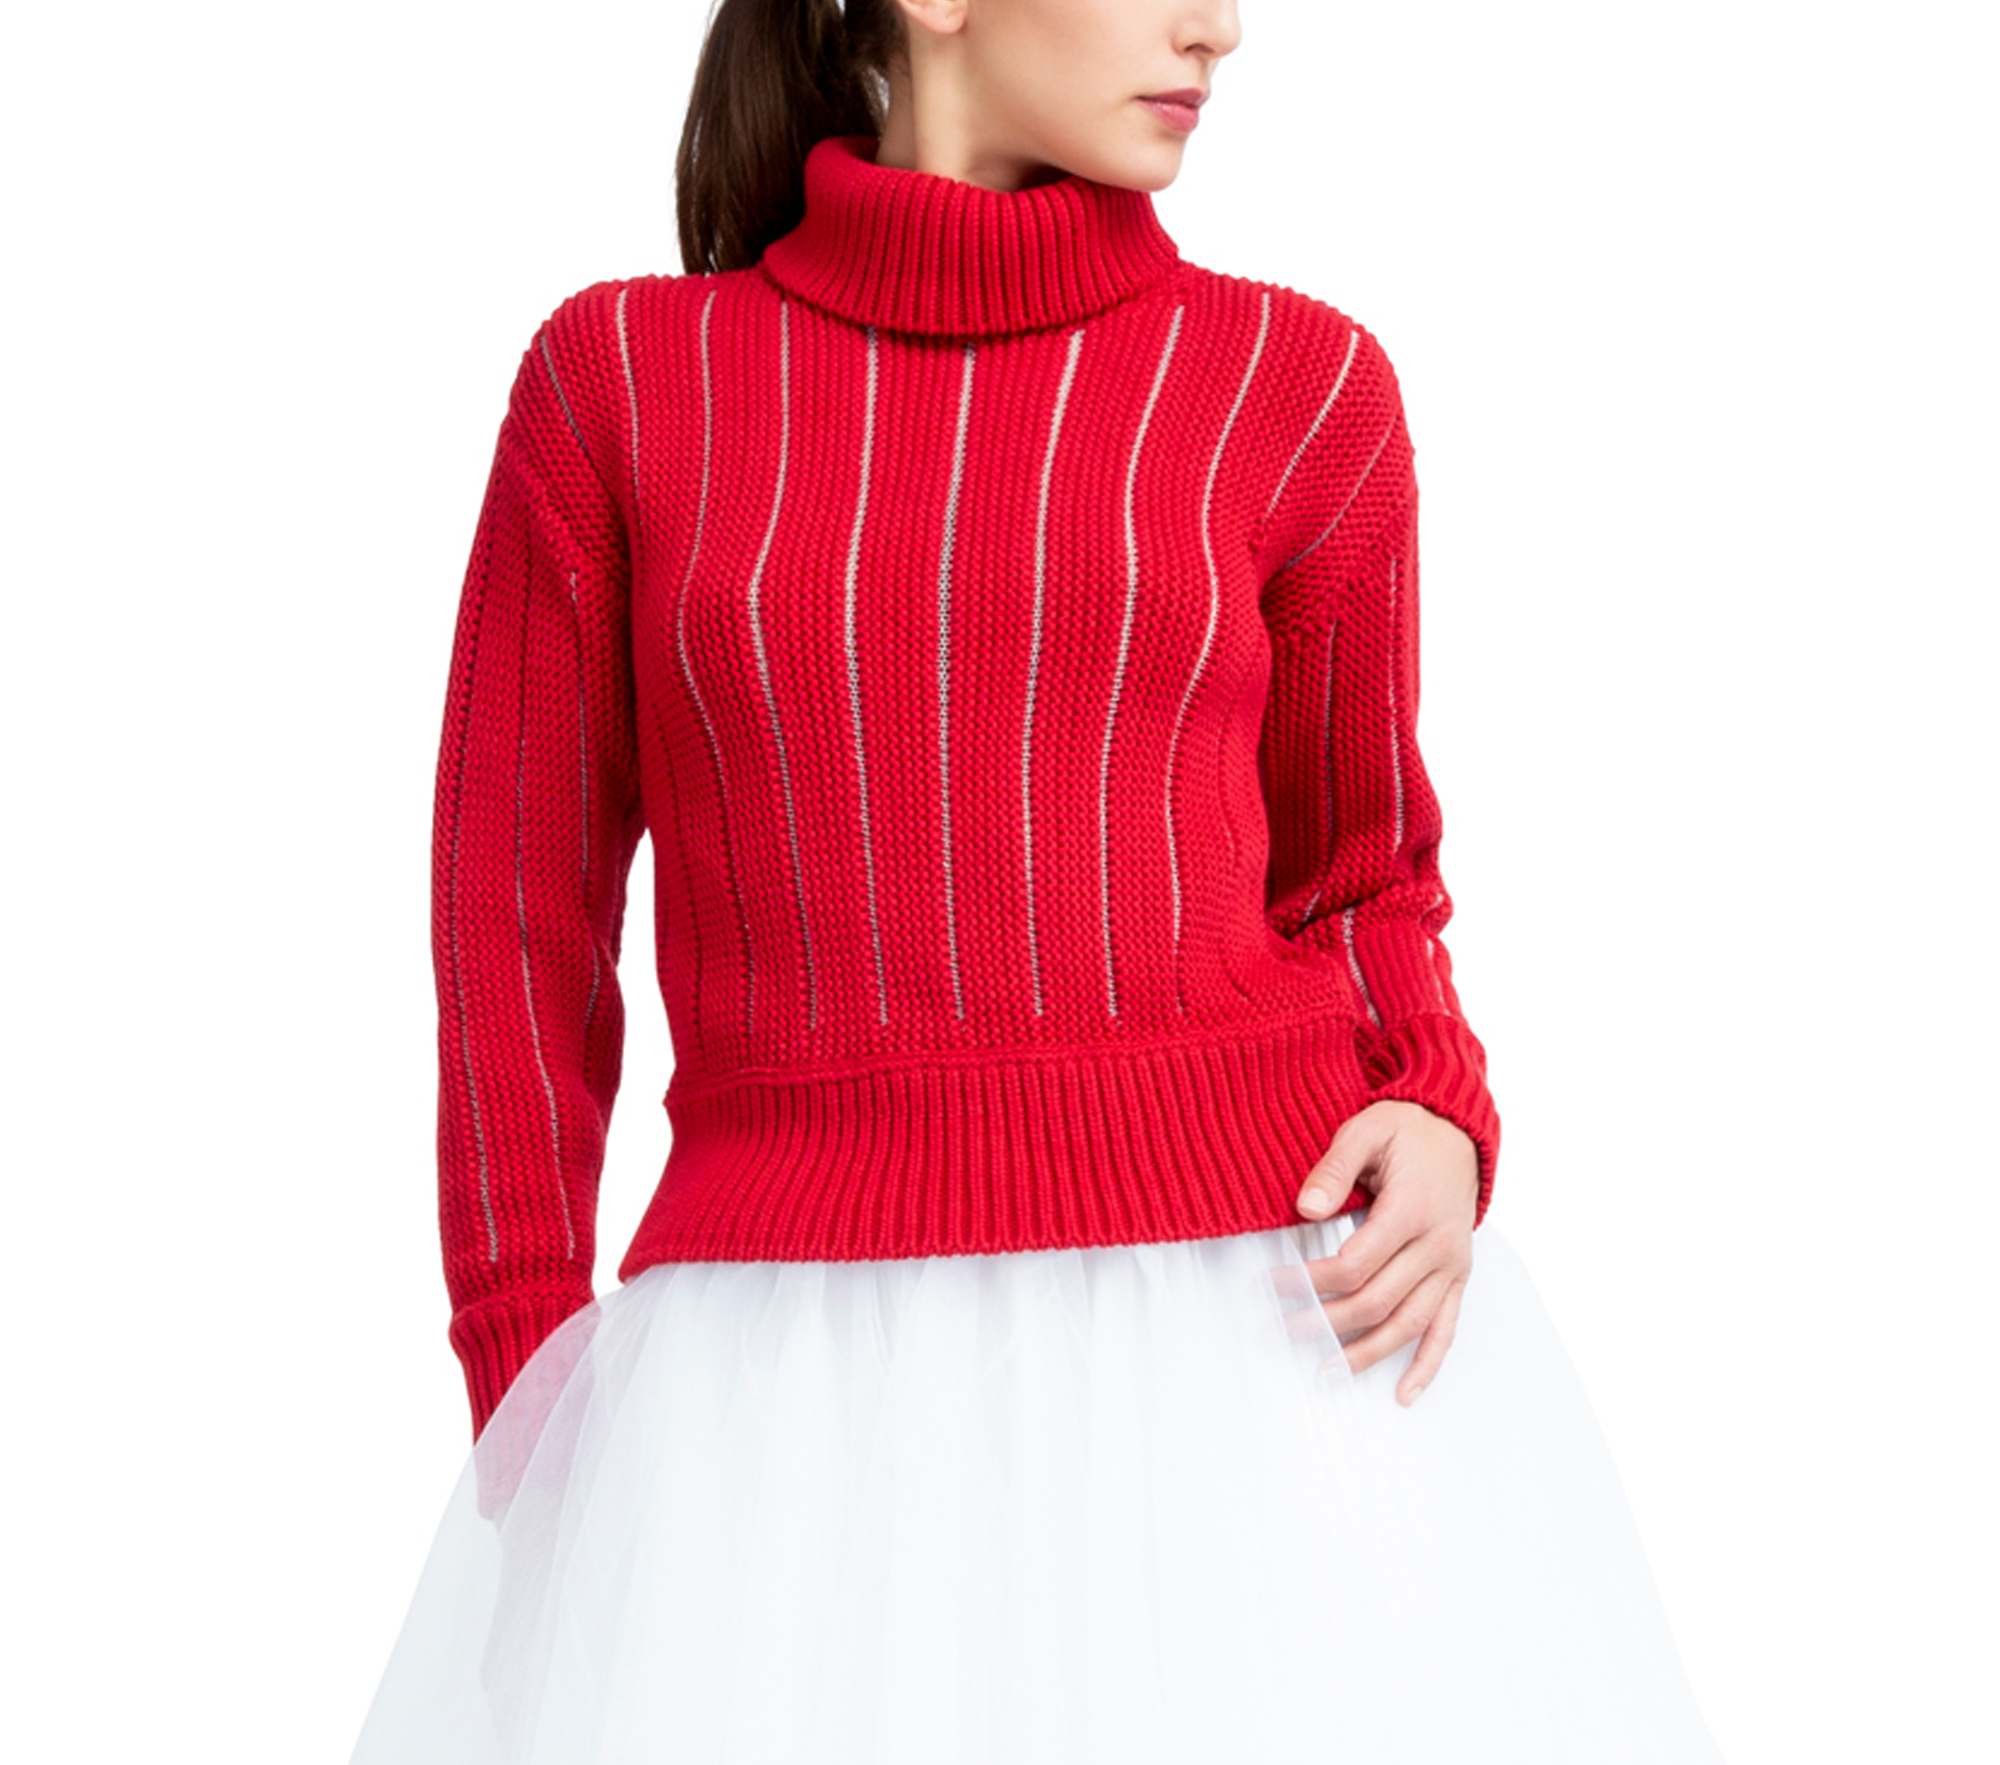 Fancy knit sweater